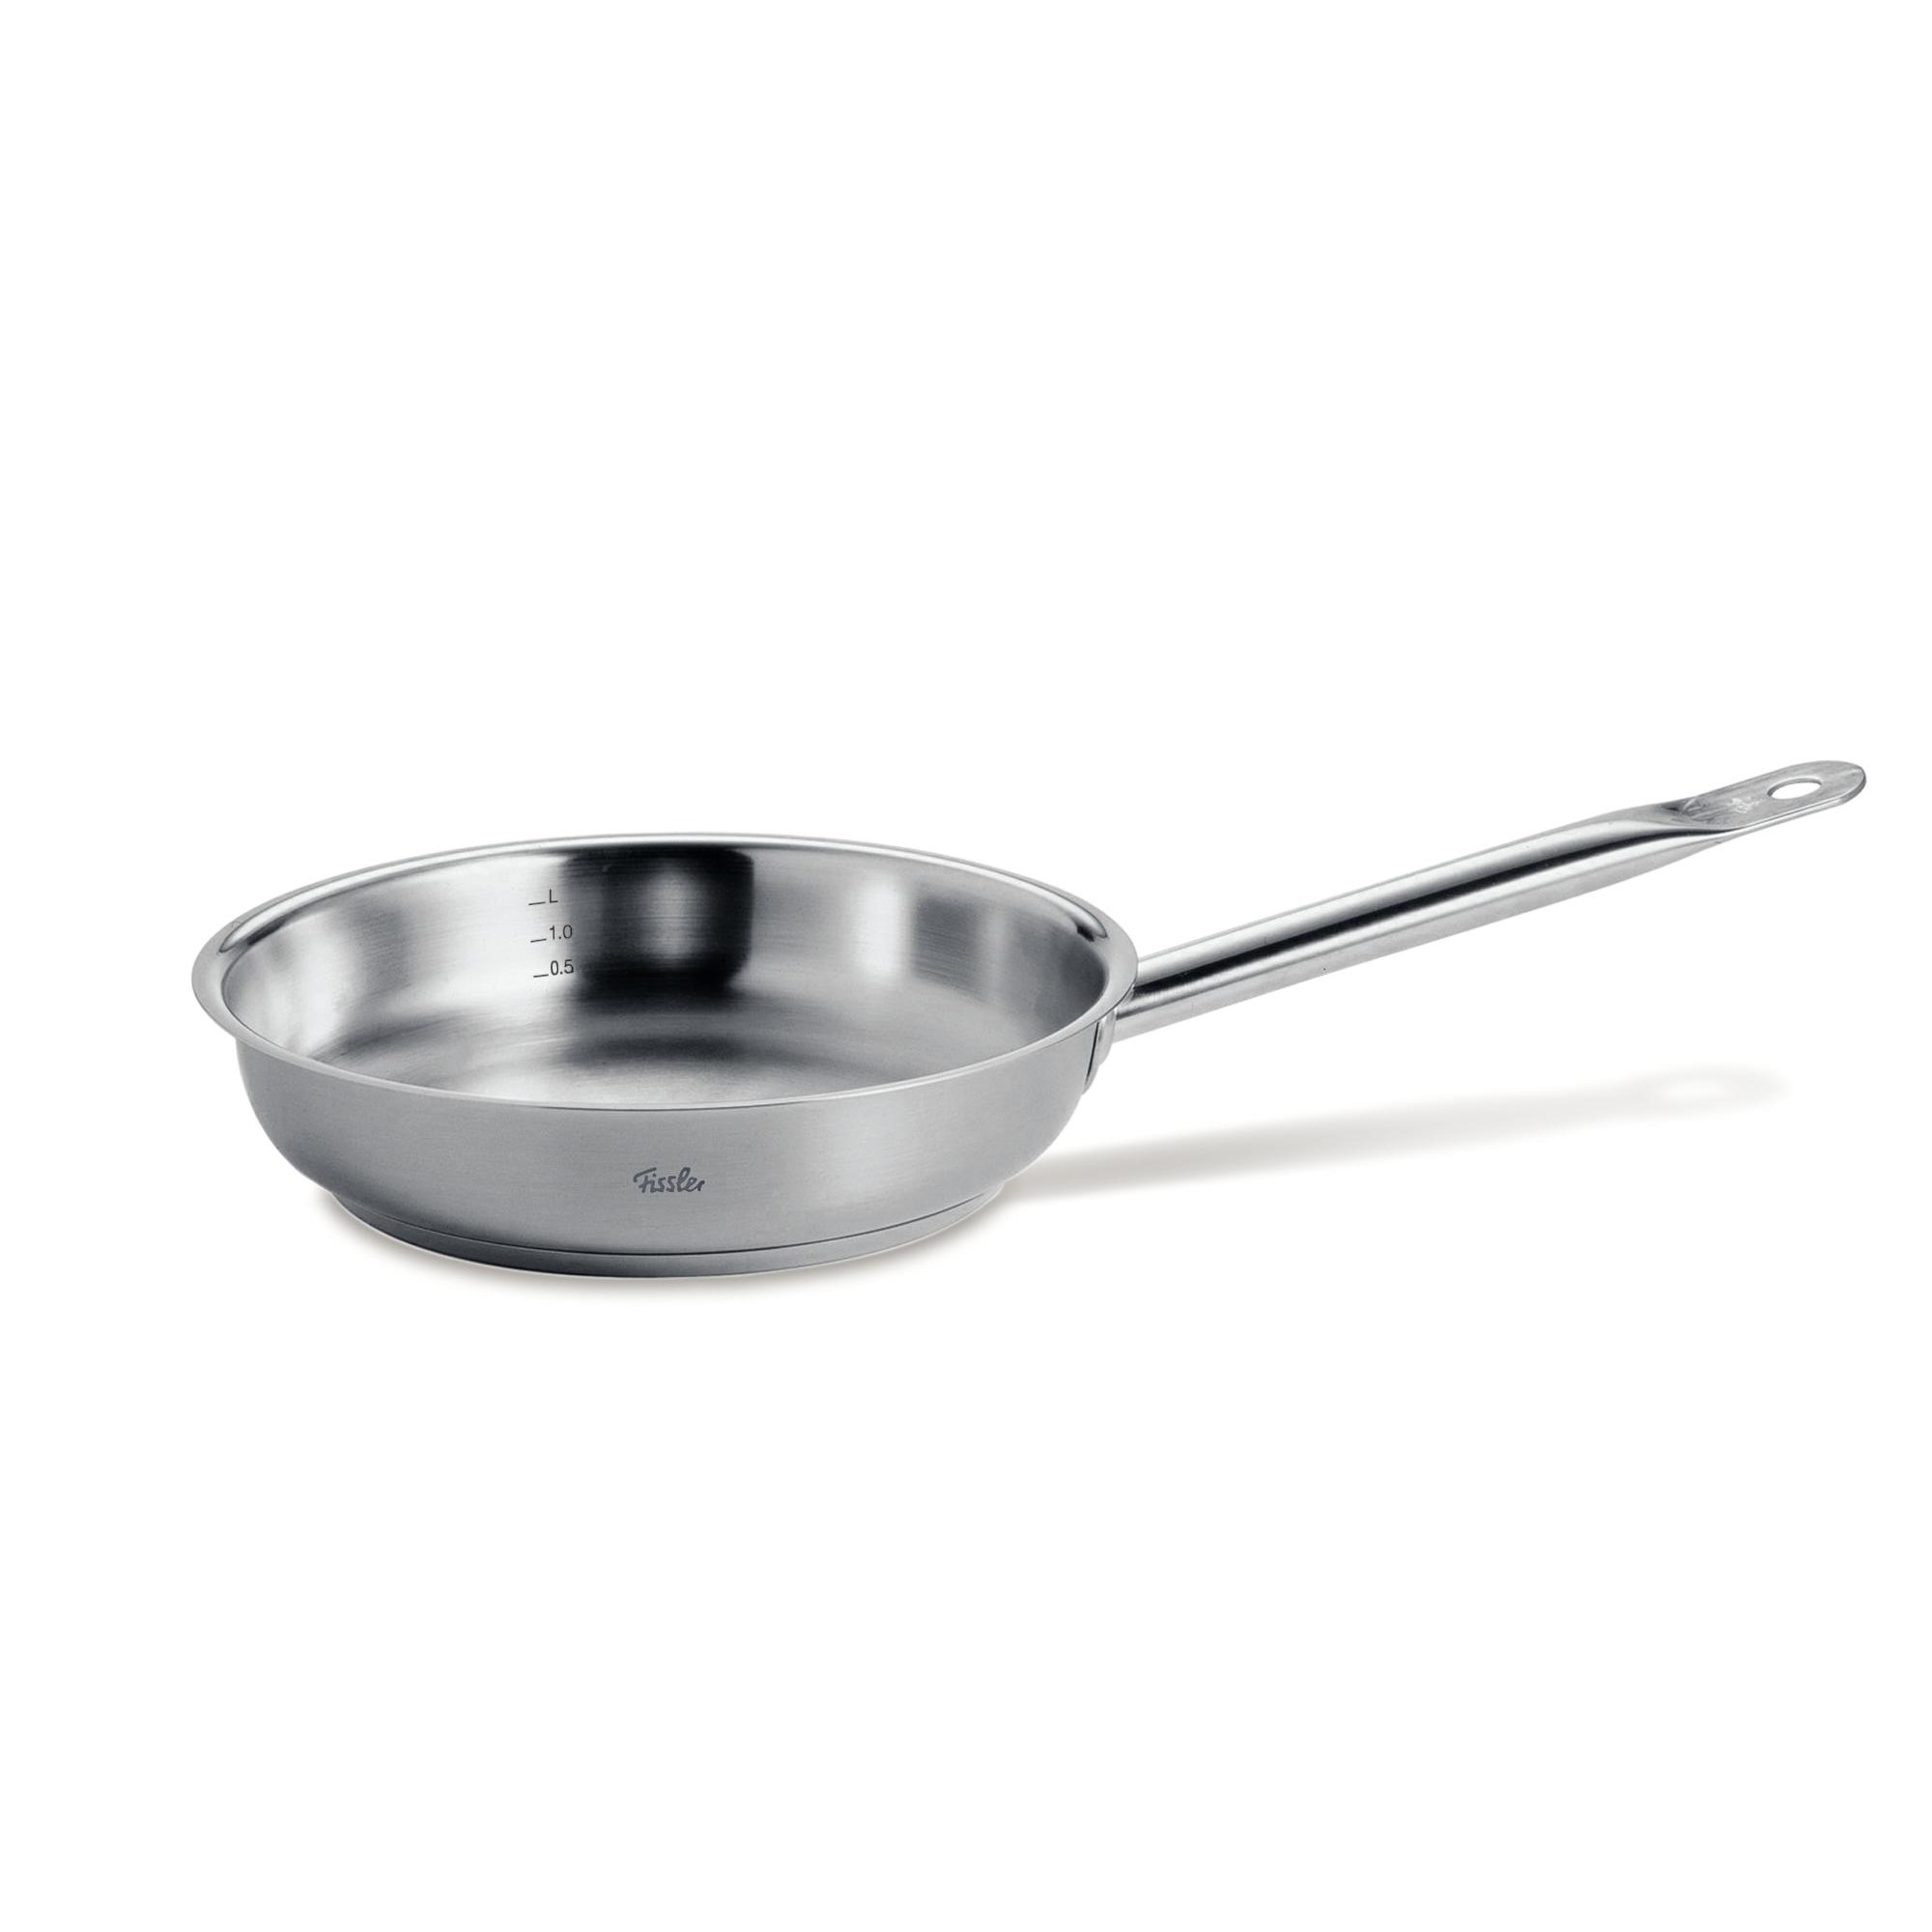 Fissler Original Profi Collection Frying Pan 32 Cm Frying Pans Frying Cooking Baking 1a Neuware Englisch